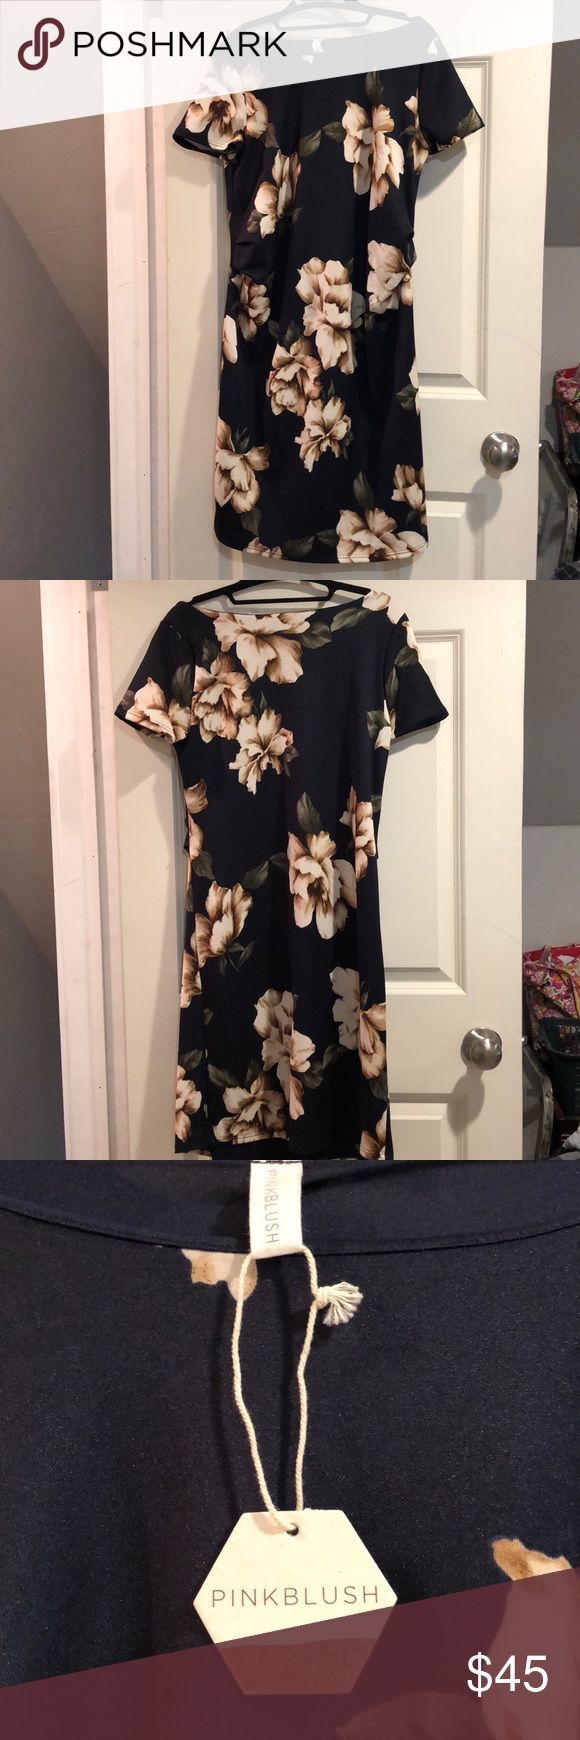 Pinkblush Floral Maternity Dress Brand New! Floral maternity dress navy blue with white and brown flowers. Room for the bump! Fitted Pinkblush Dresses